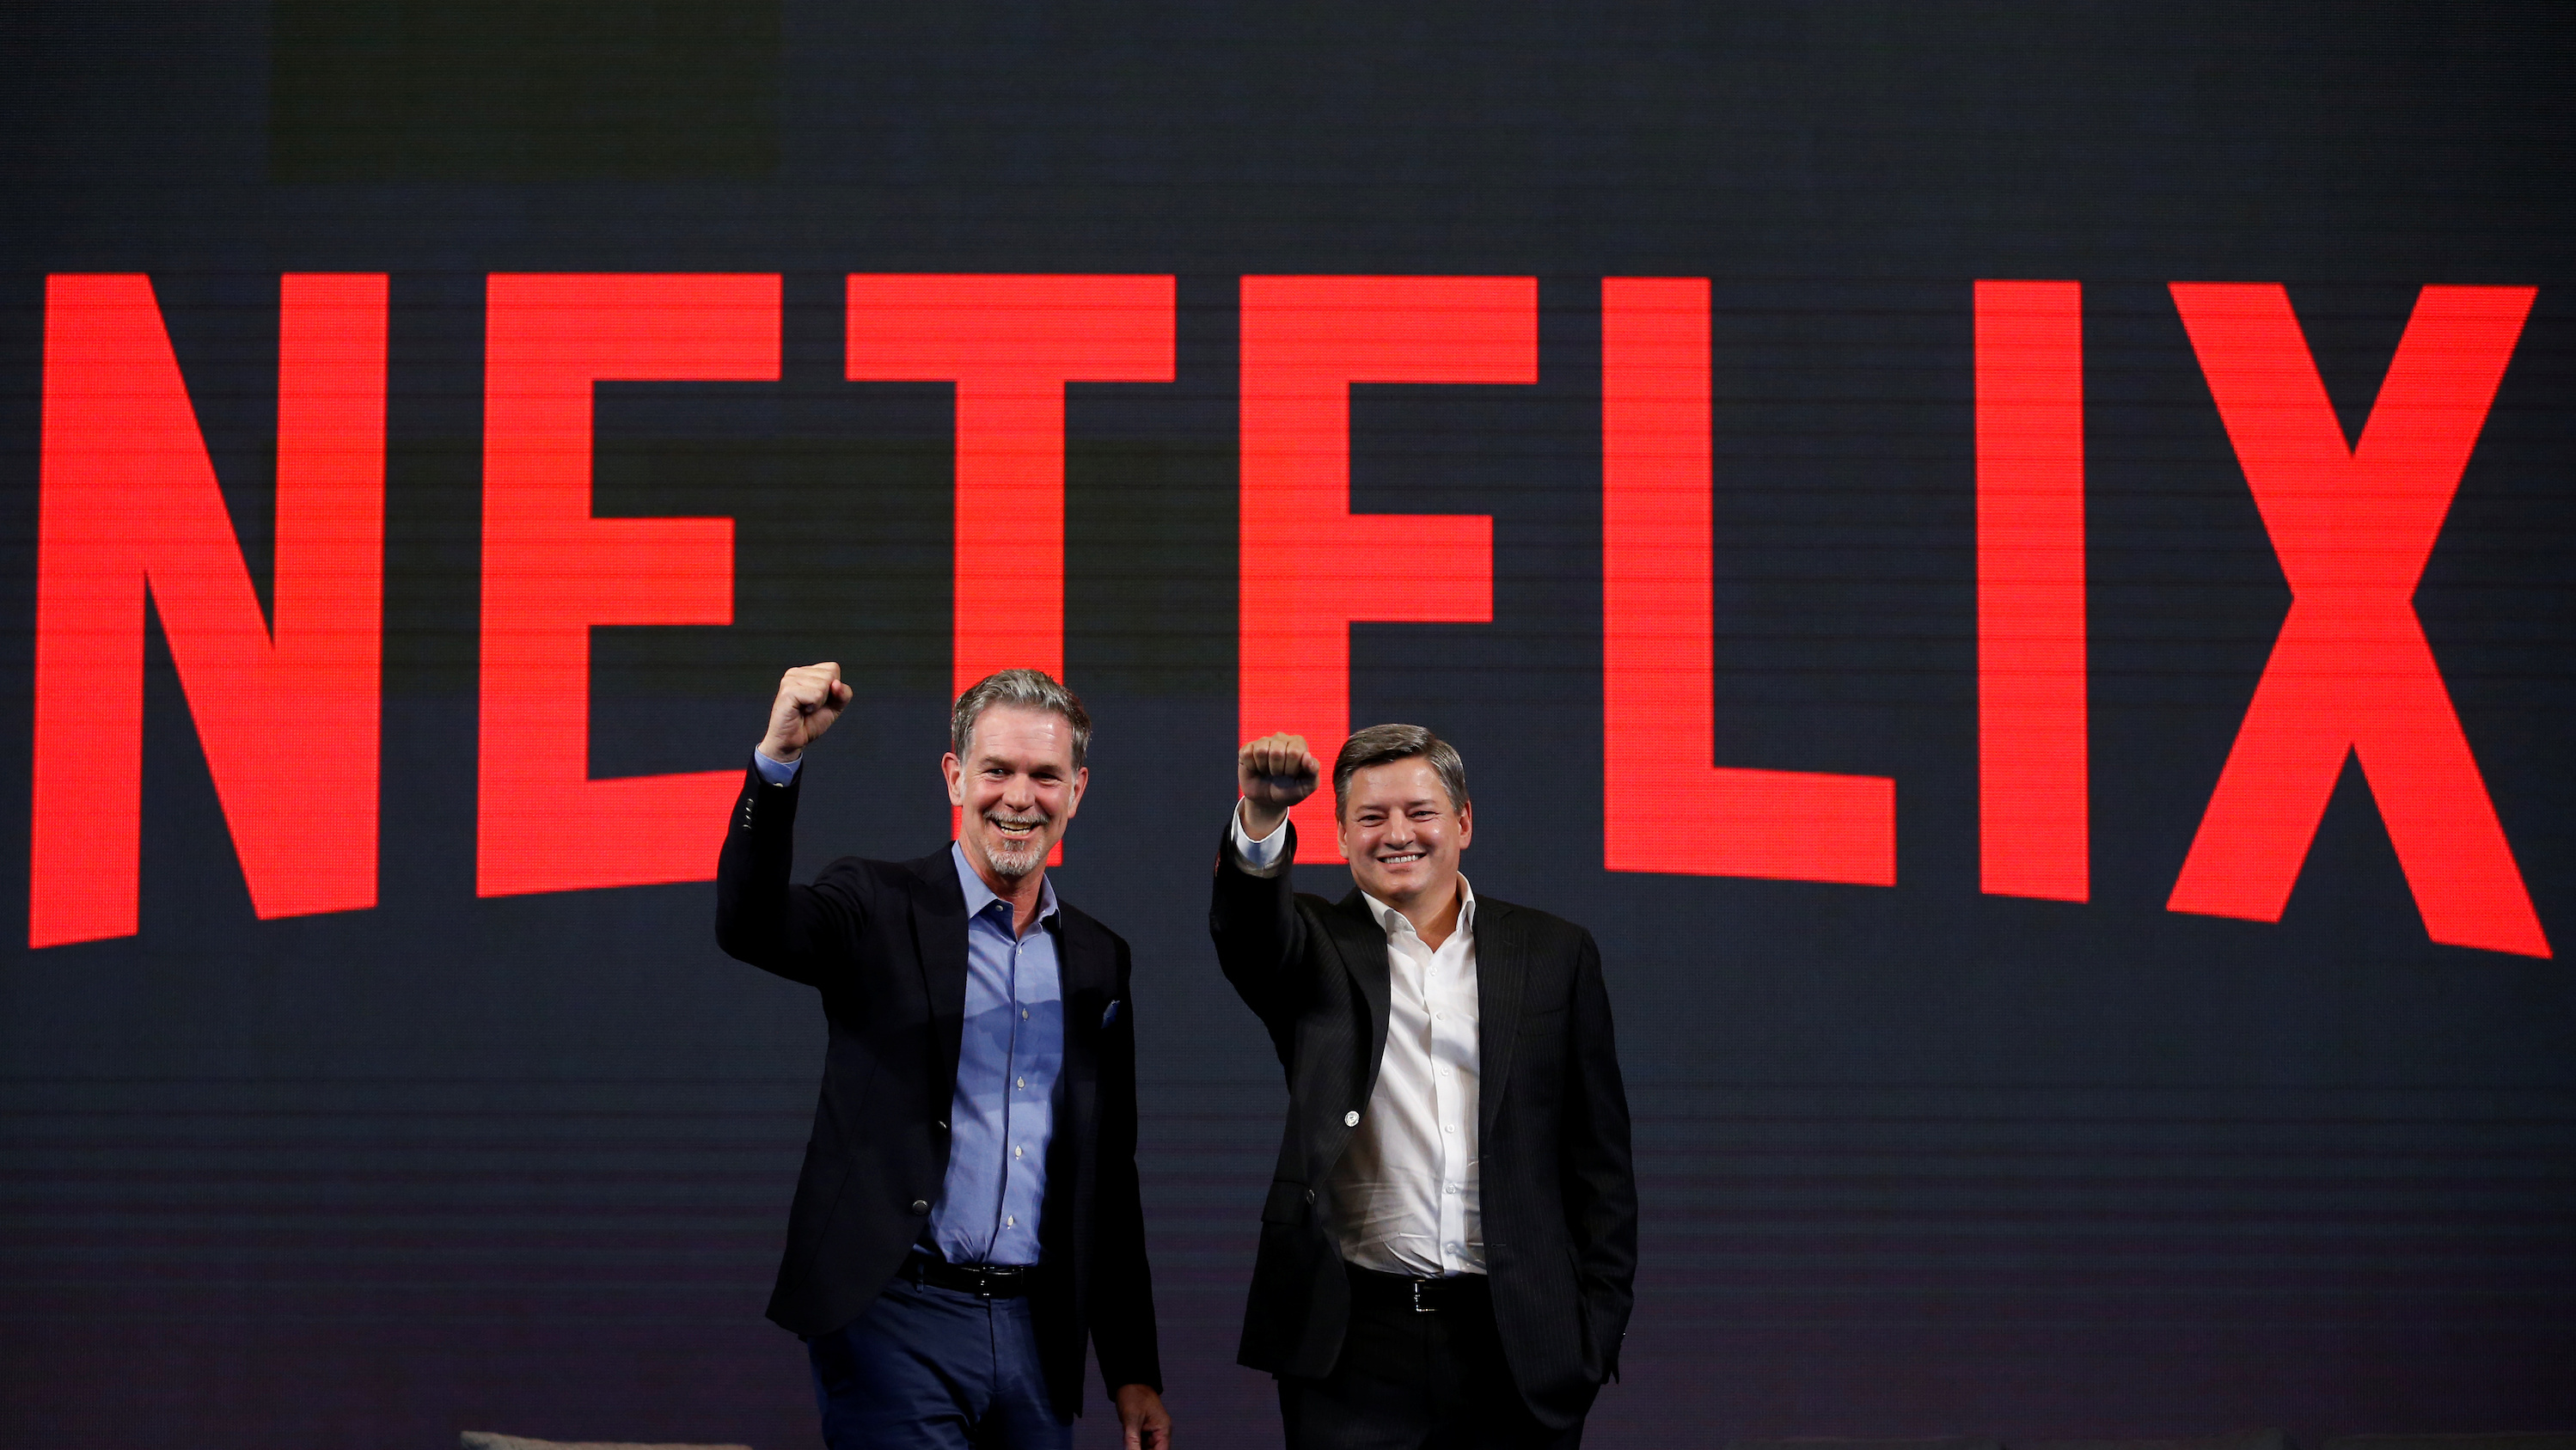 Netflix co-CEOs Reed Hastings and Ted Sarandos pose for a photo